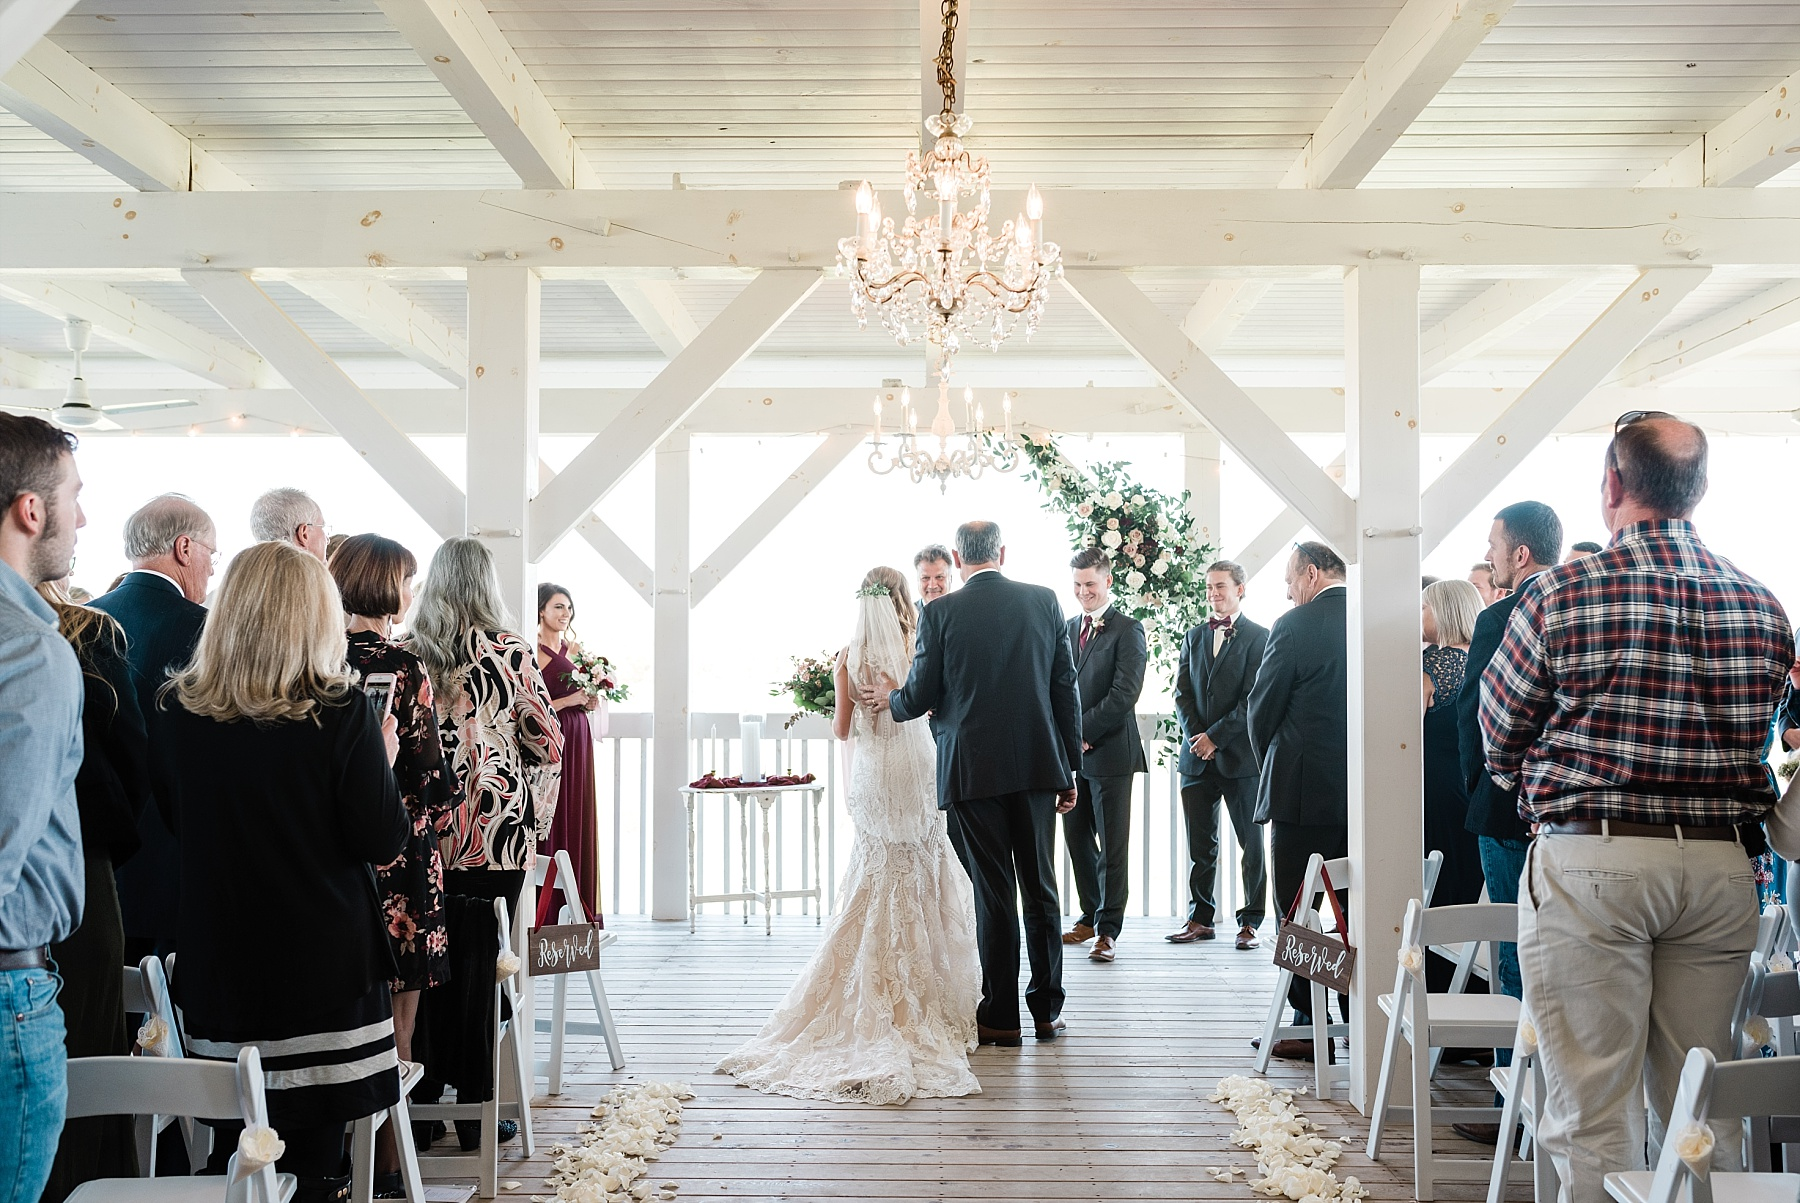 Golden Autumn Outdoor Wedding with Ivory, Bergundy, and Blush Color Palette at Blue Bell Farms  by Kelsi Kliethermes Photography_0026.jpg